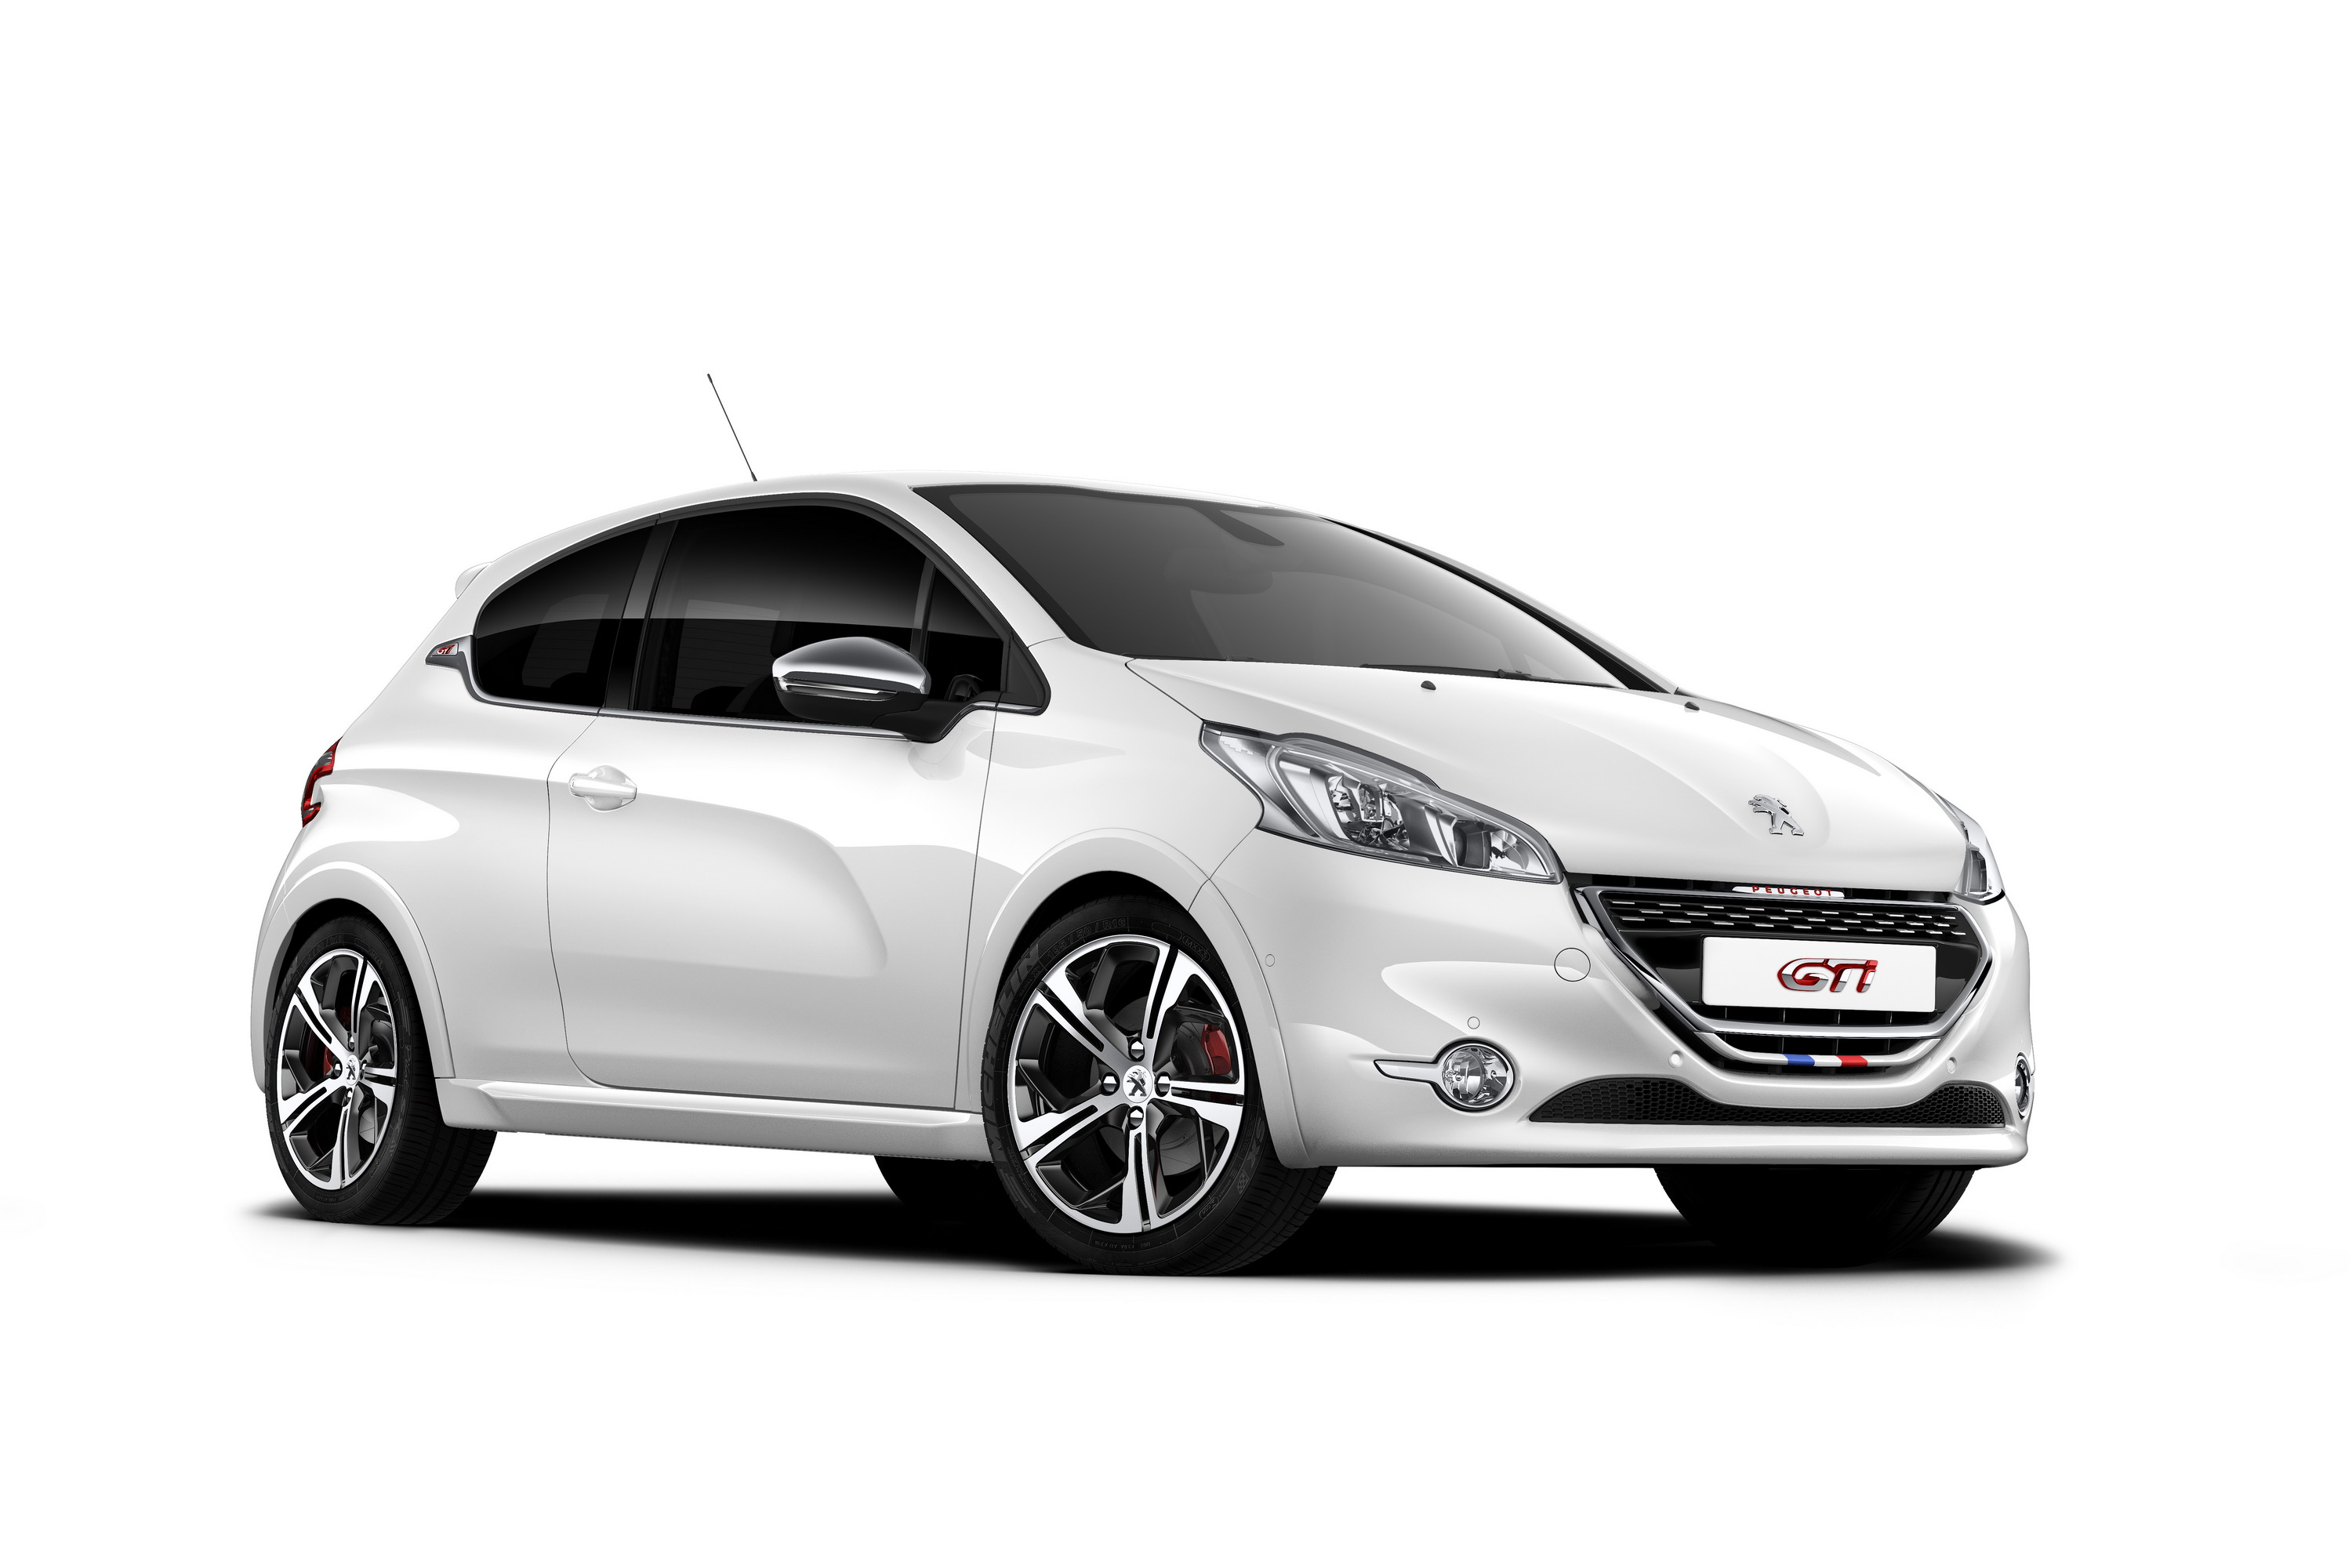 2013 peugeot 208 gti review gallery top speed. Black Bedroom Furniture Sets. Home Design Ideas